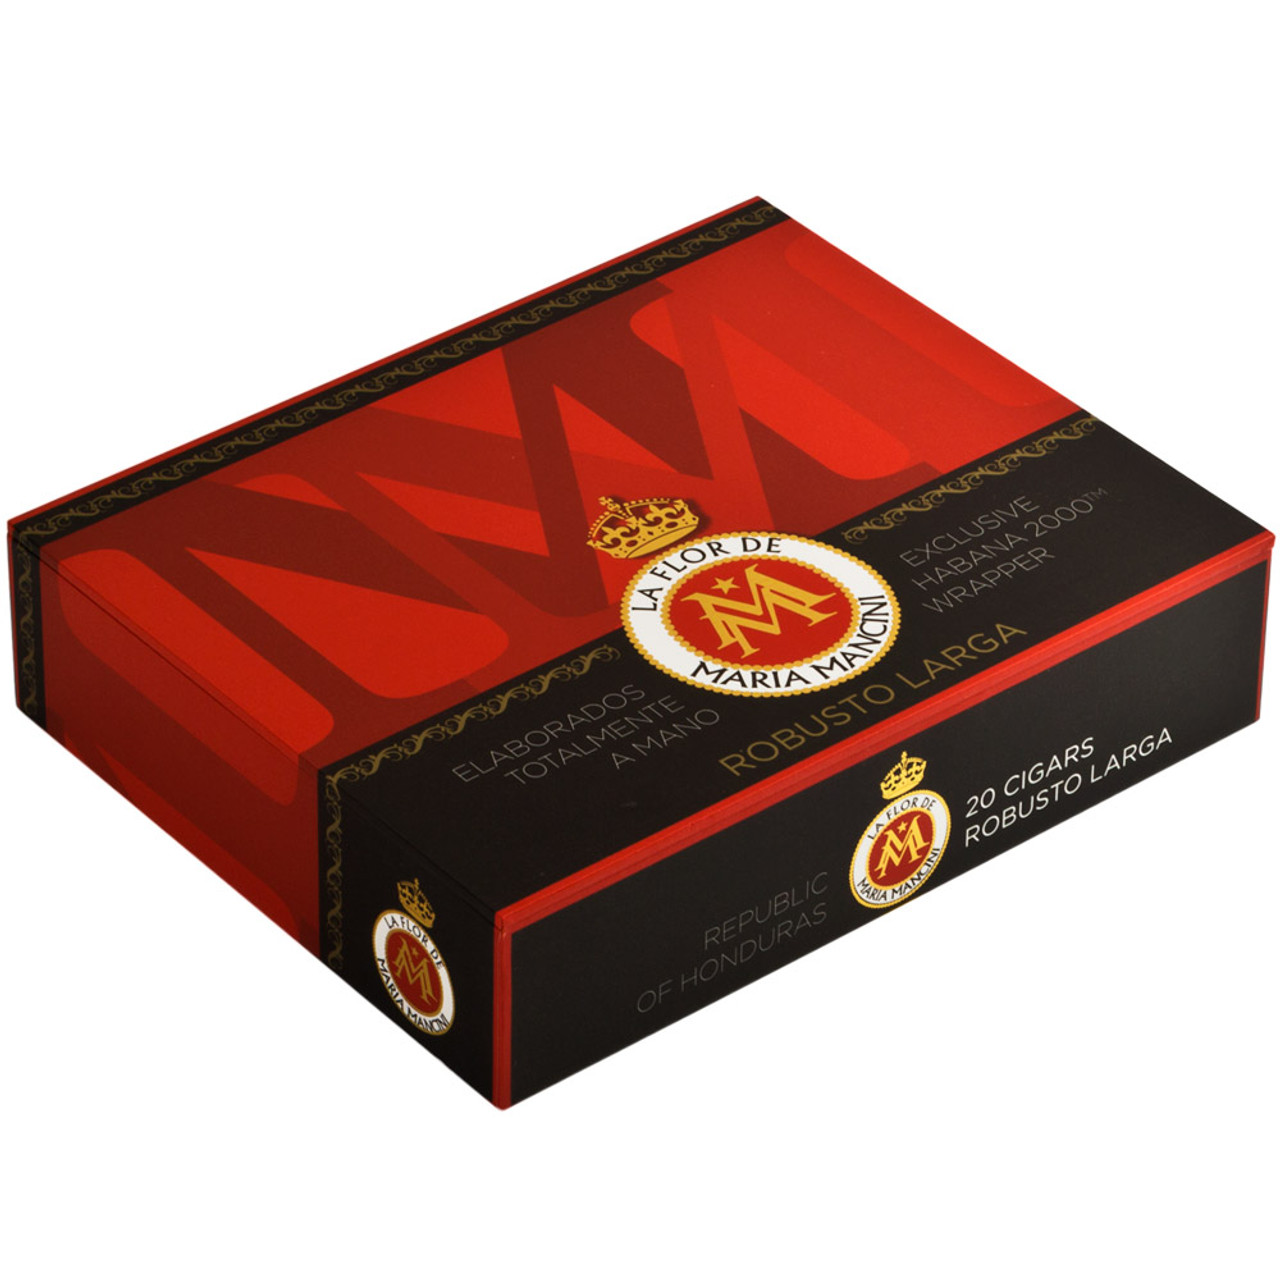 Maria Mancini Red DeGaulle Cigars - 5 x 50 (Box of 20)